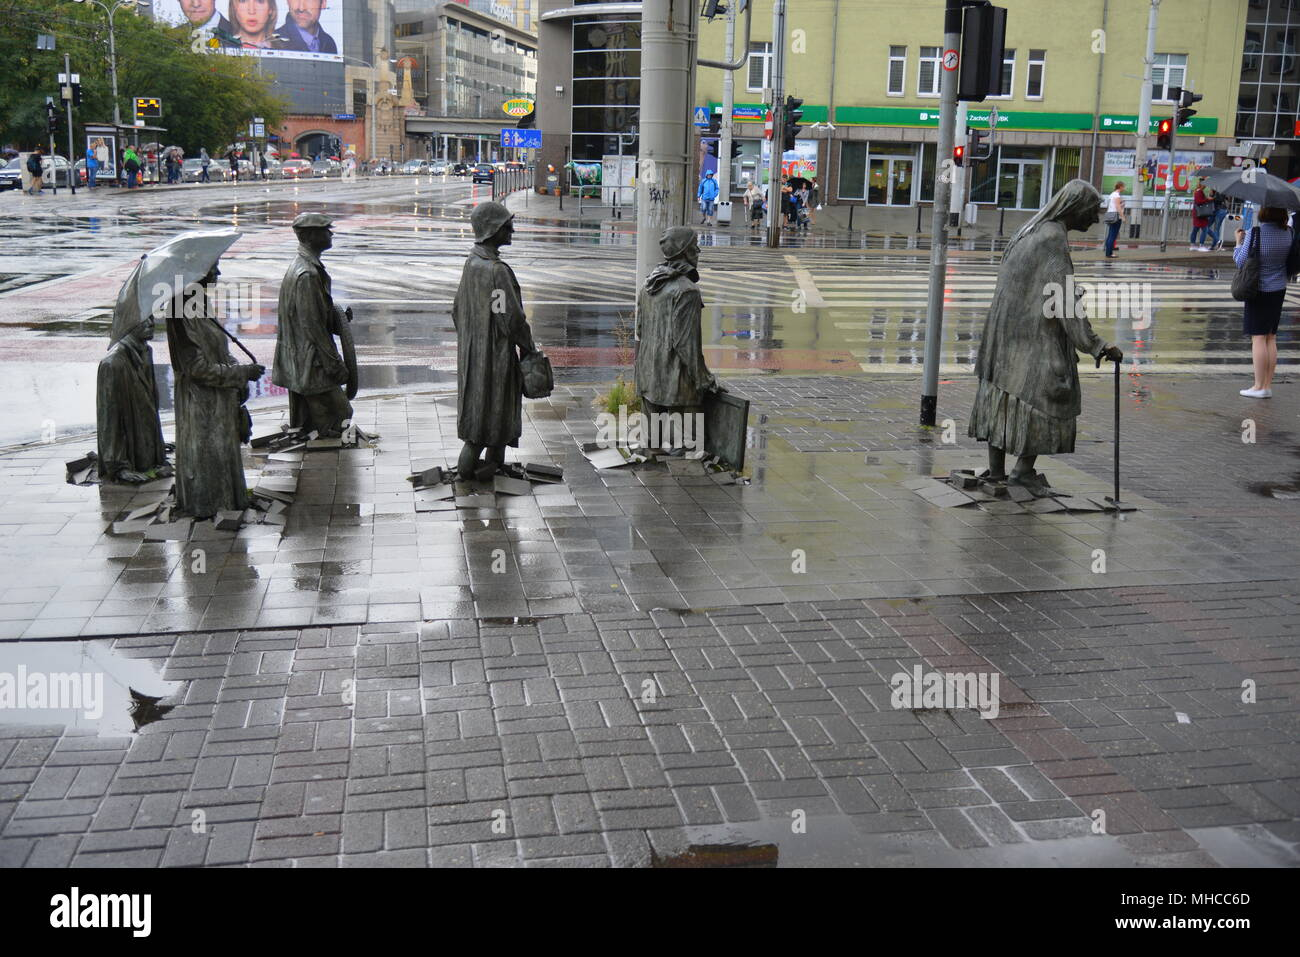 The famous sculpture 'Passage', commonly called 'Monument to the Anonymous Passerby' by Polish artist Jerzy Kalina at an intersection in Wroclaw. Stock Photo